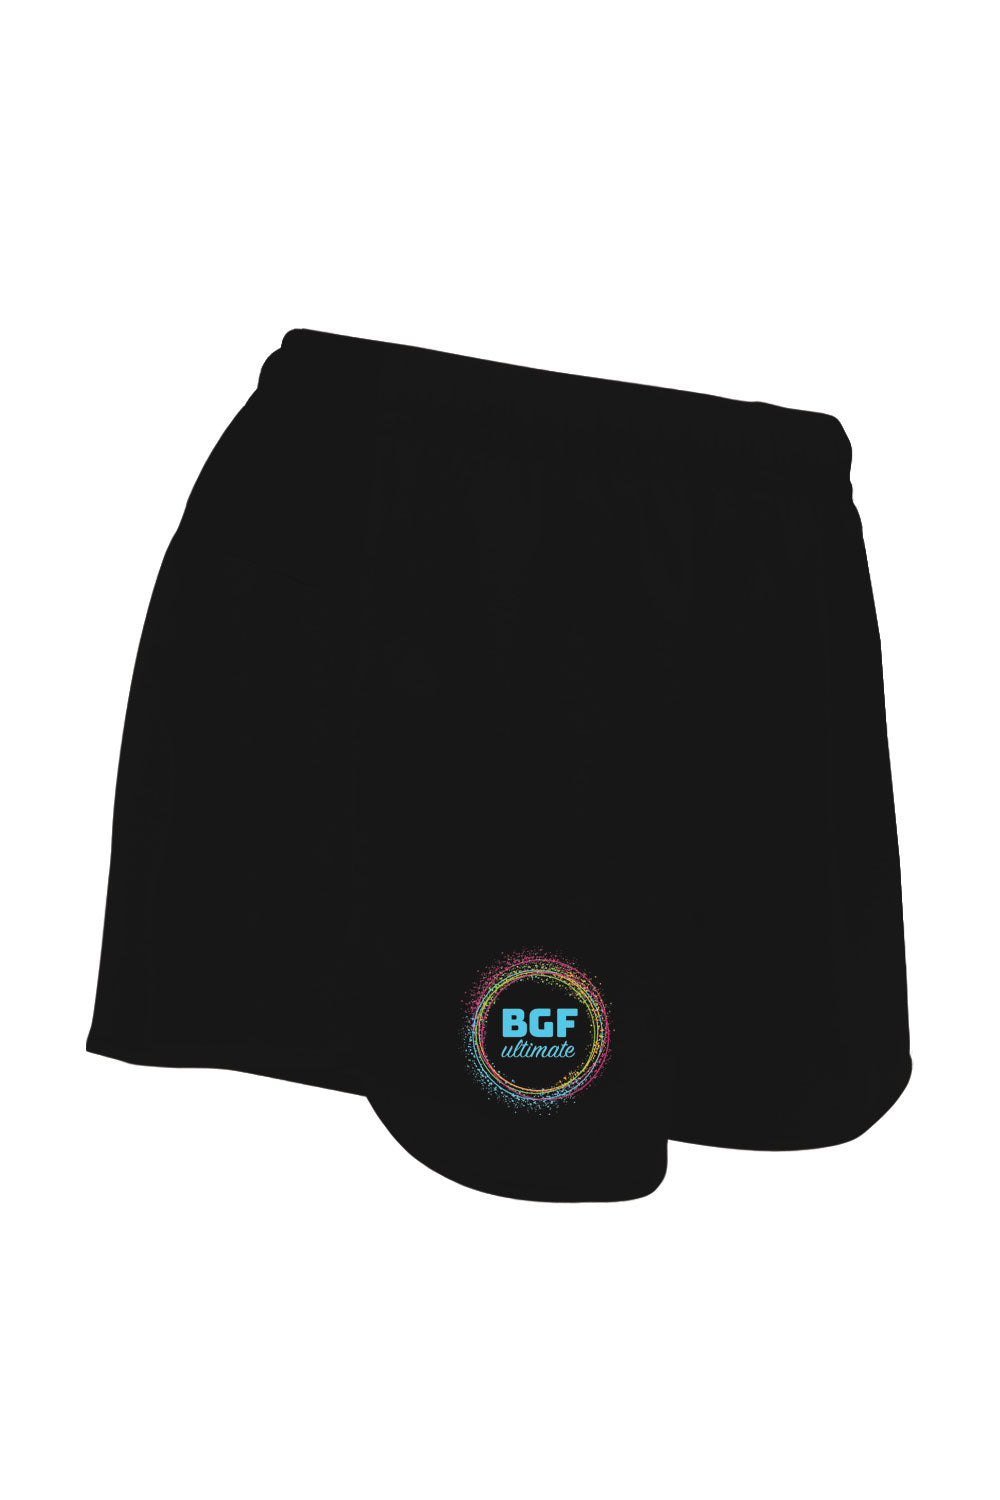 BGF Full Sub Racer Shorts